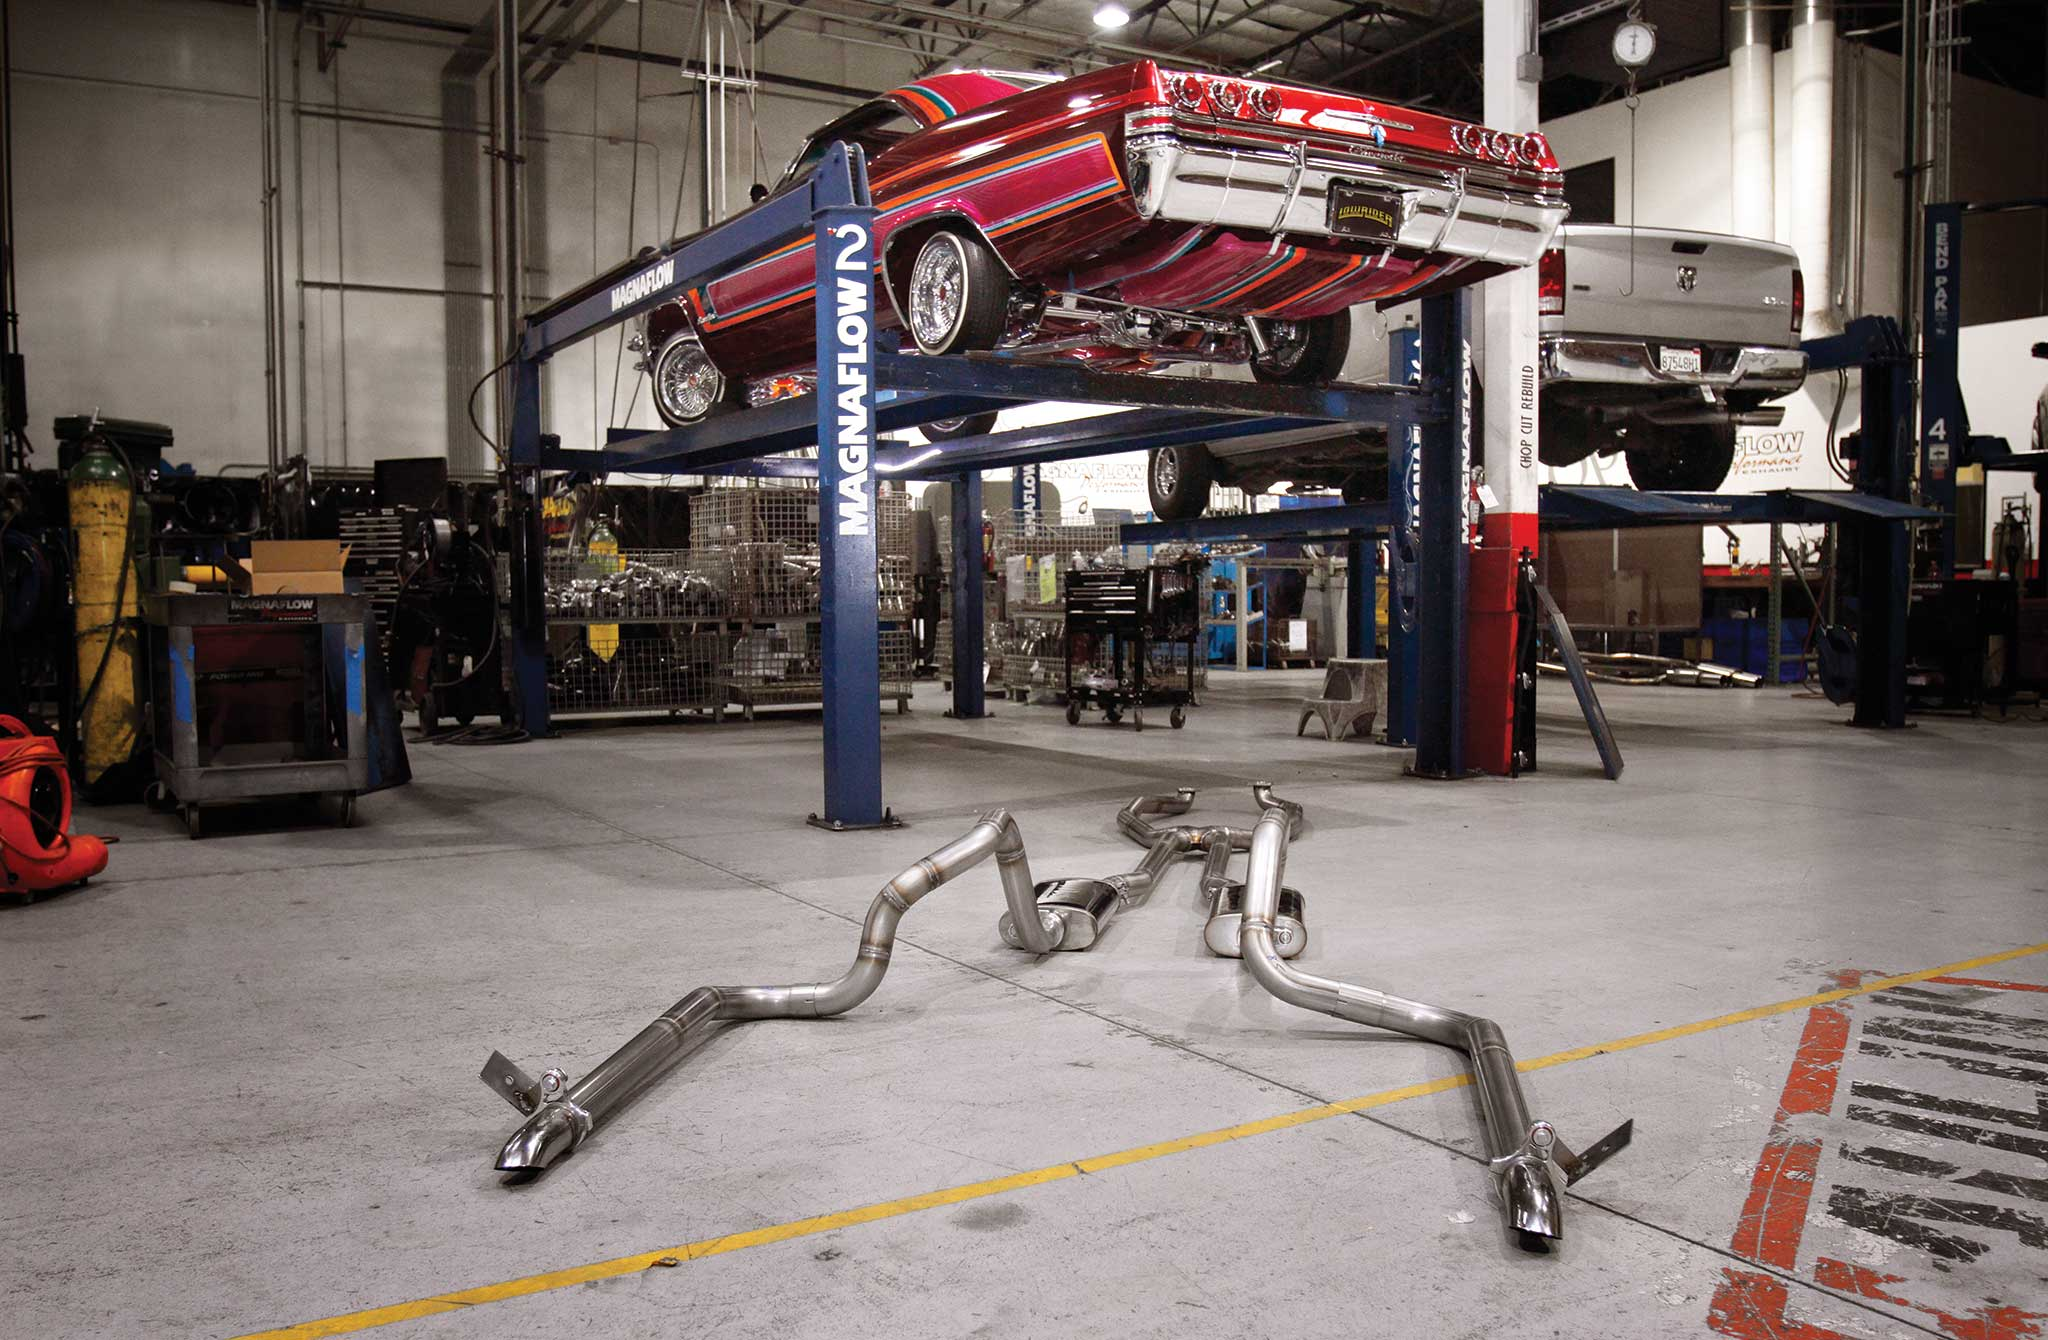 001 magnaflow exhaust install 65 impala